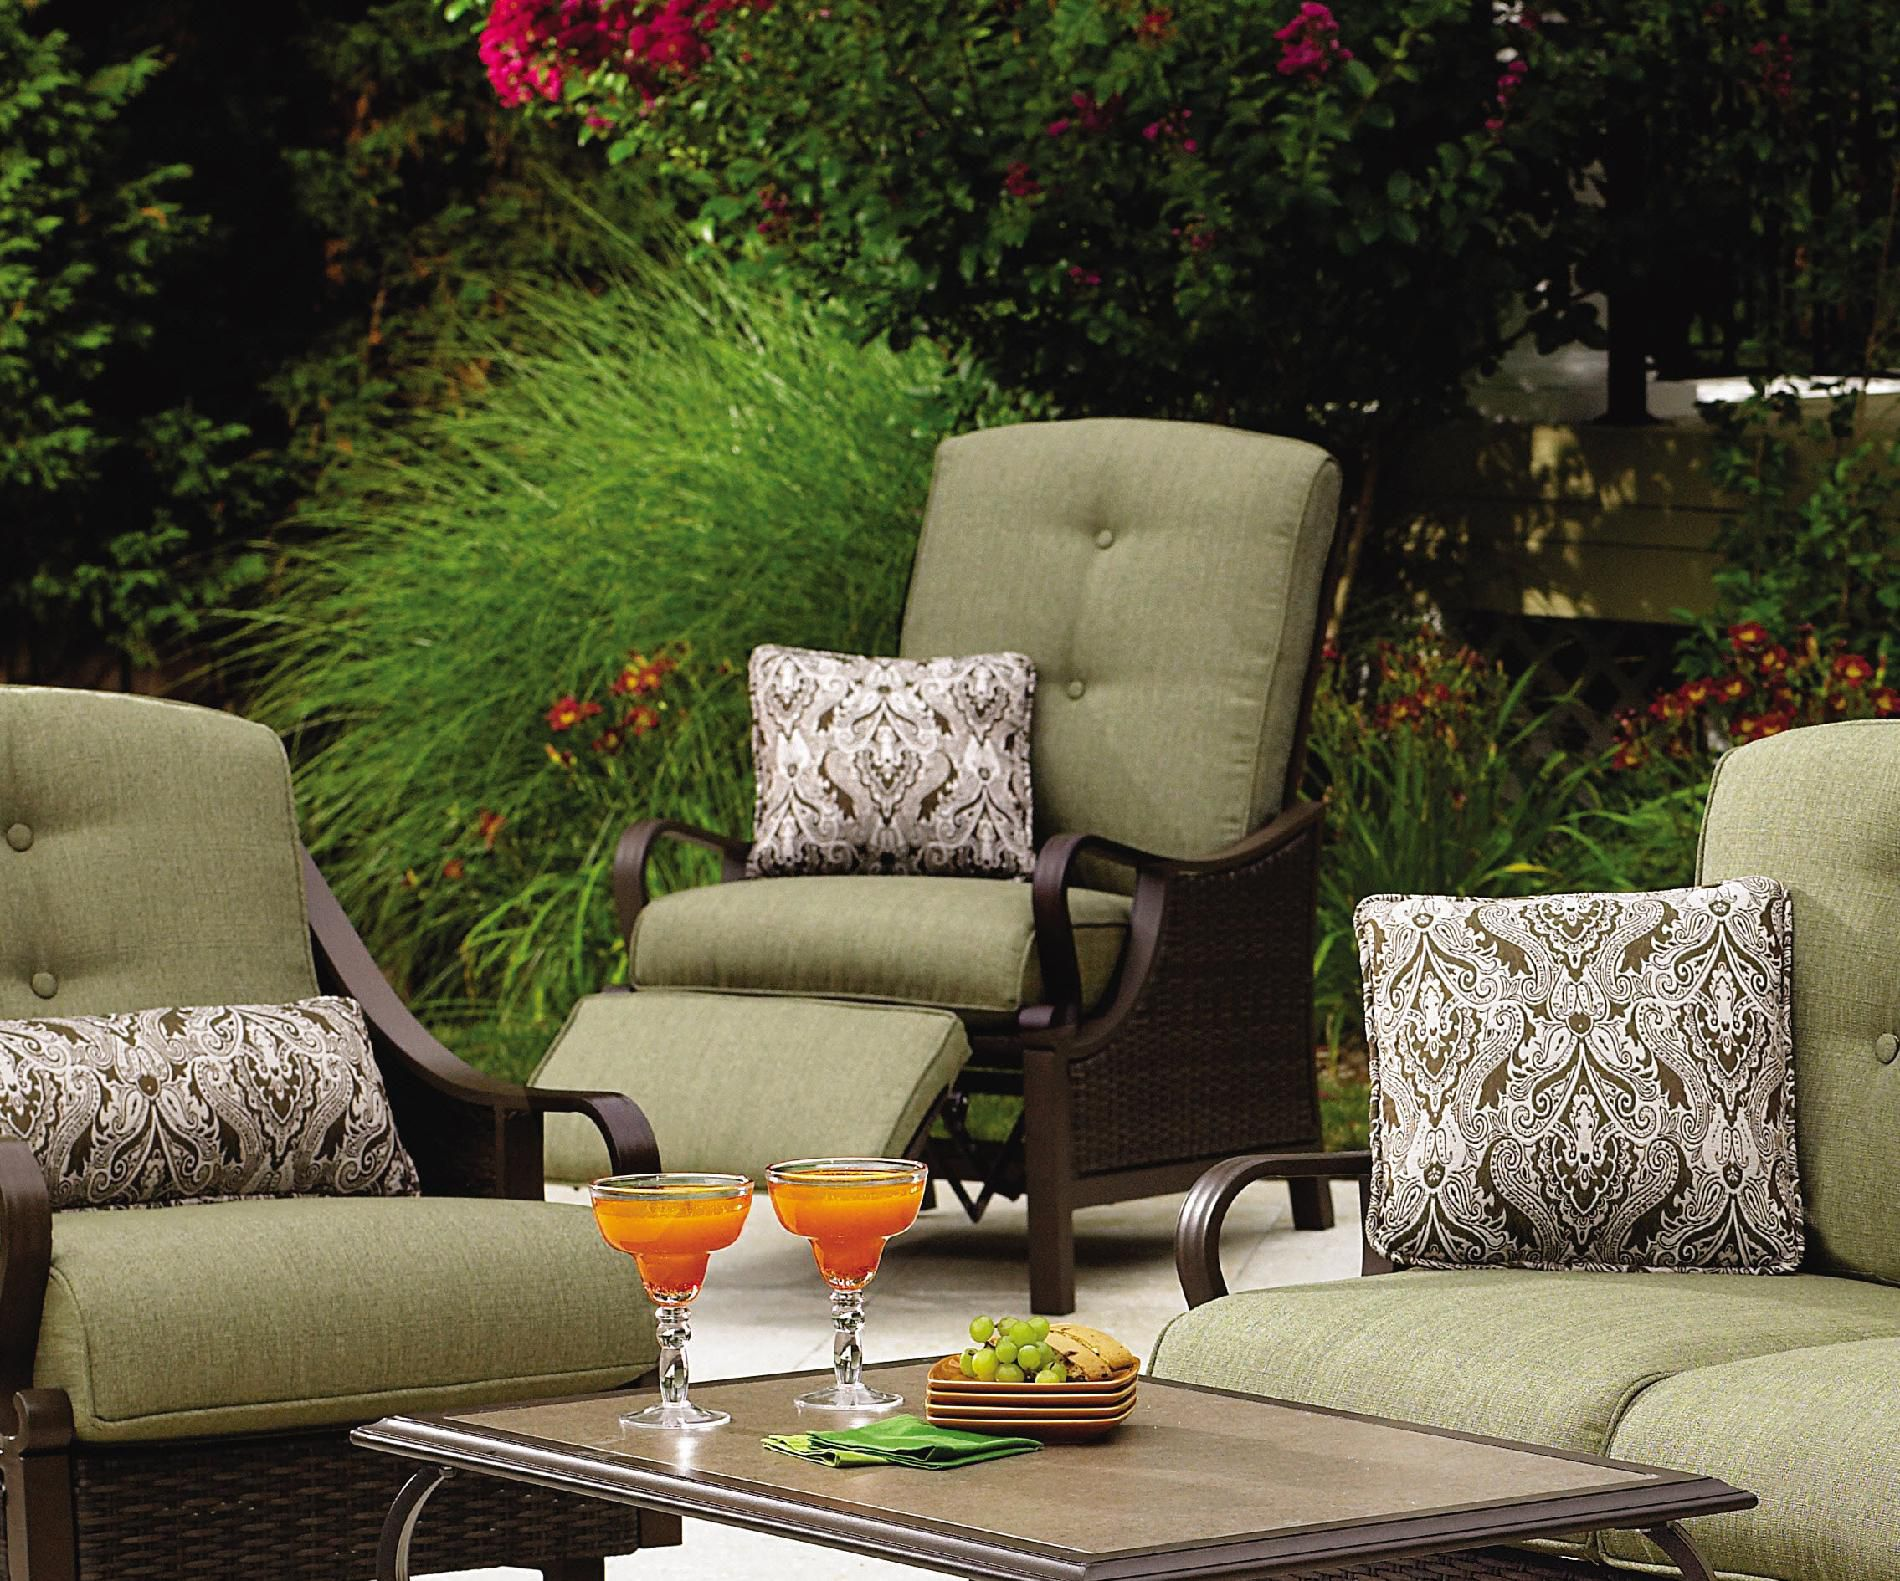 La-Z-Boy Outdoor Peyton Recliner* Limited Availability